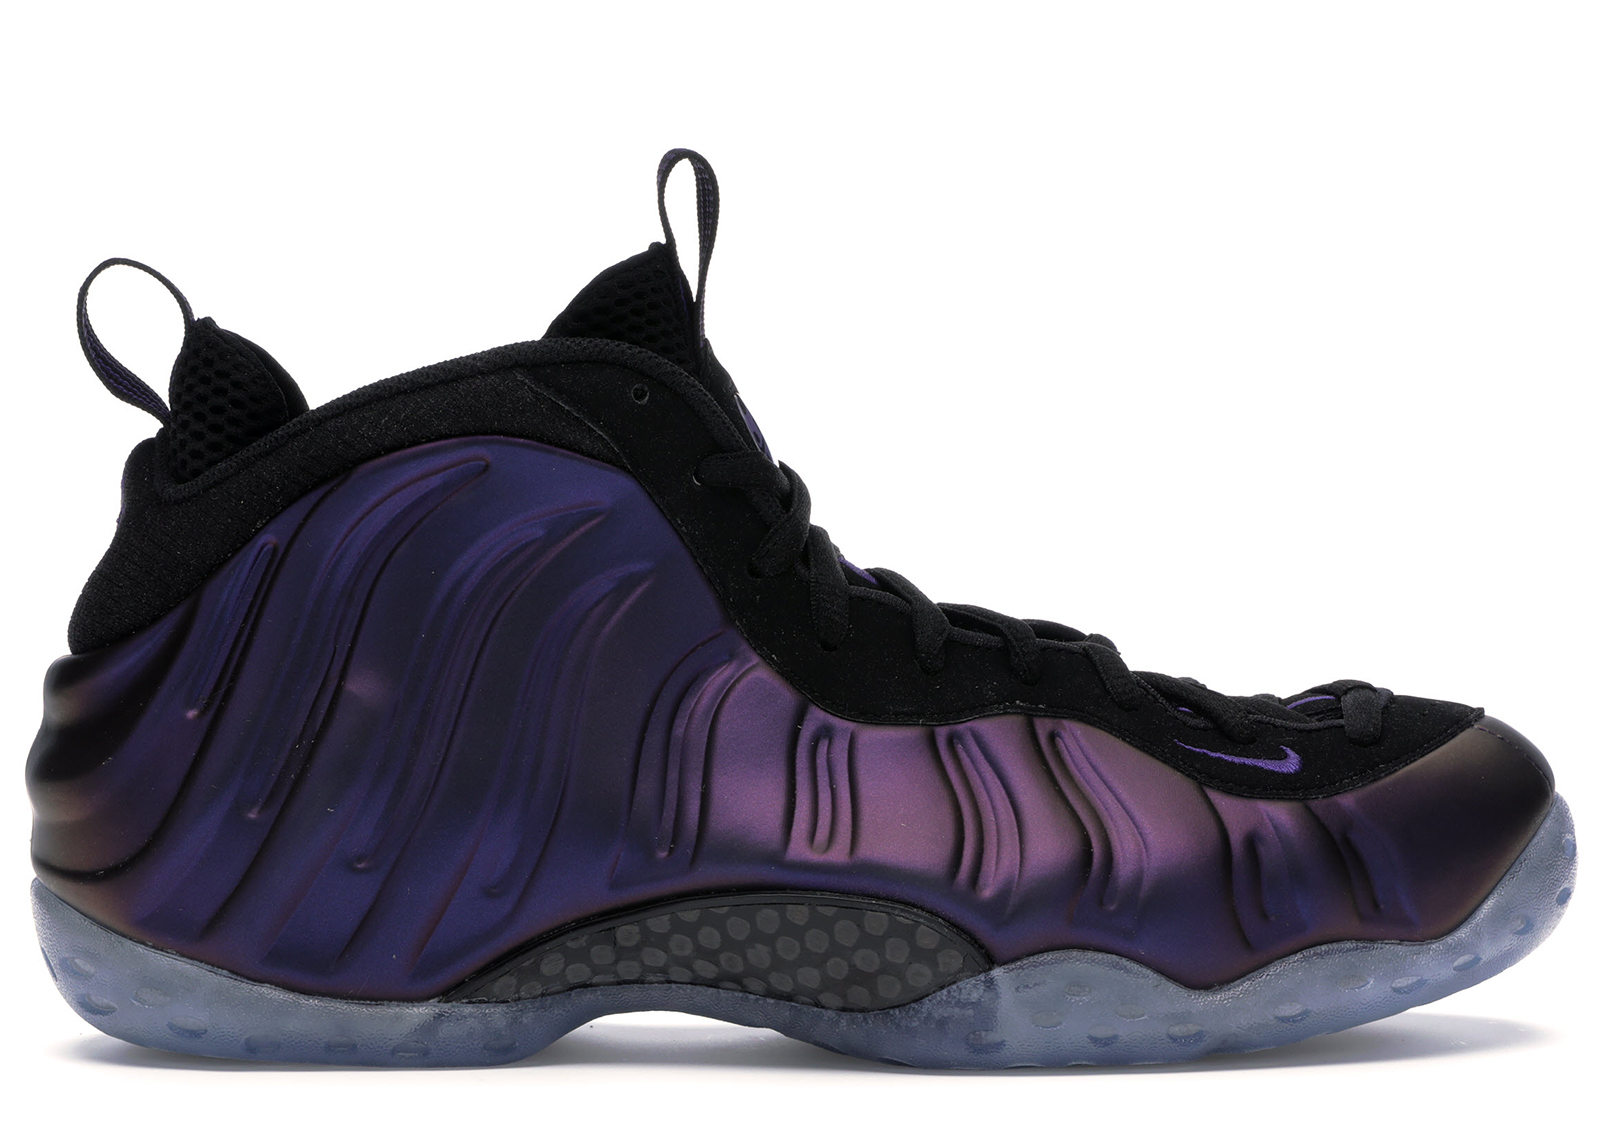 448c2642215 new zealand air nike foamposite one eggplant 2017 gs fc662 96a8f